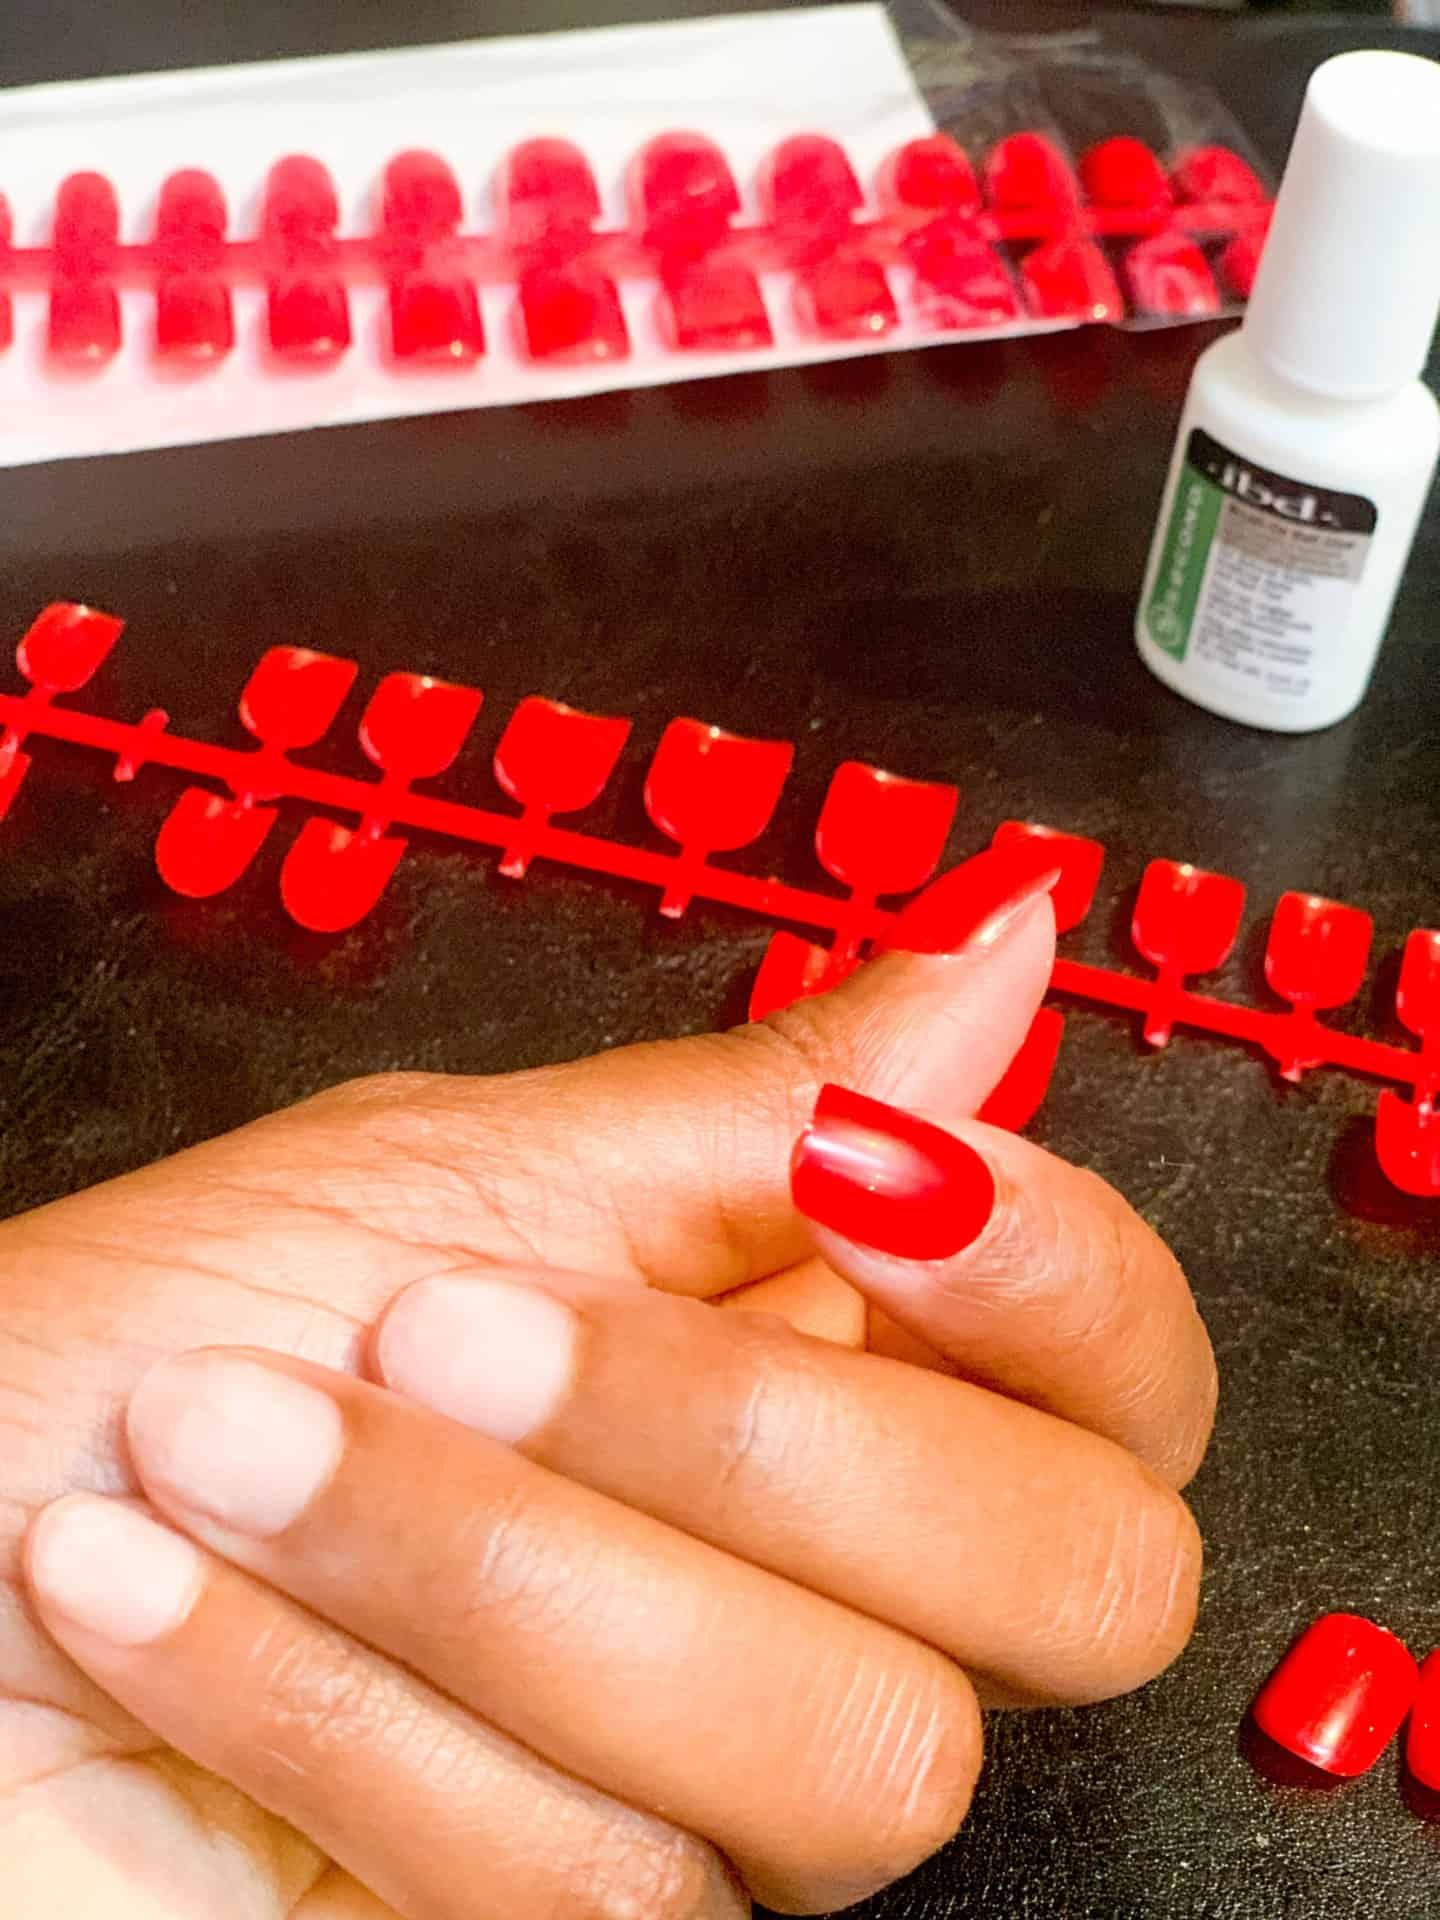 The Five-Minute Full Set Press-On Nails